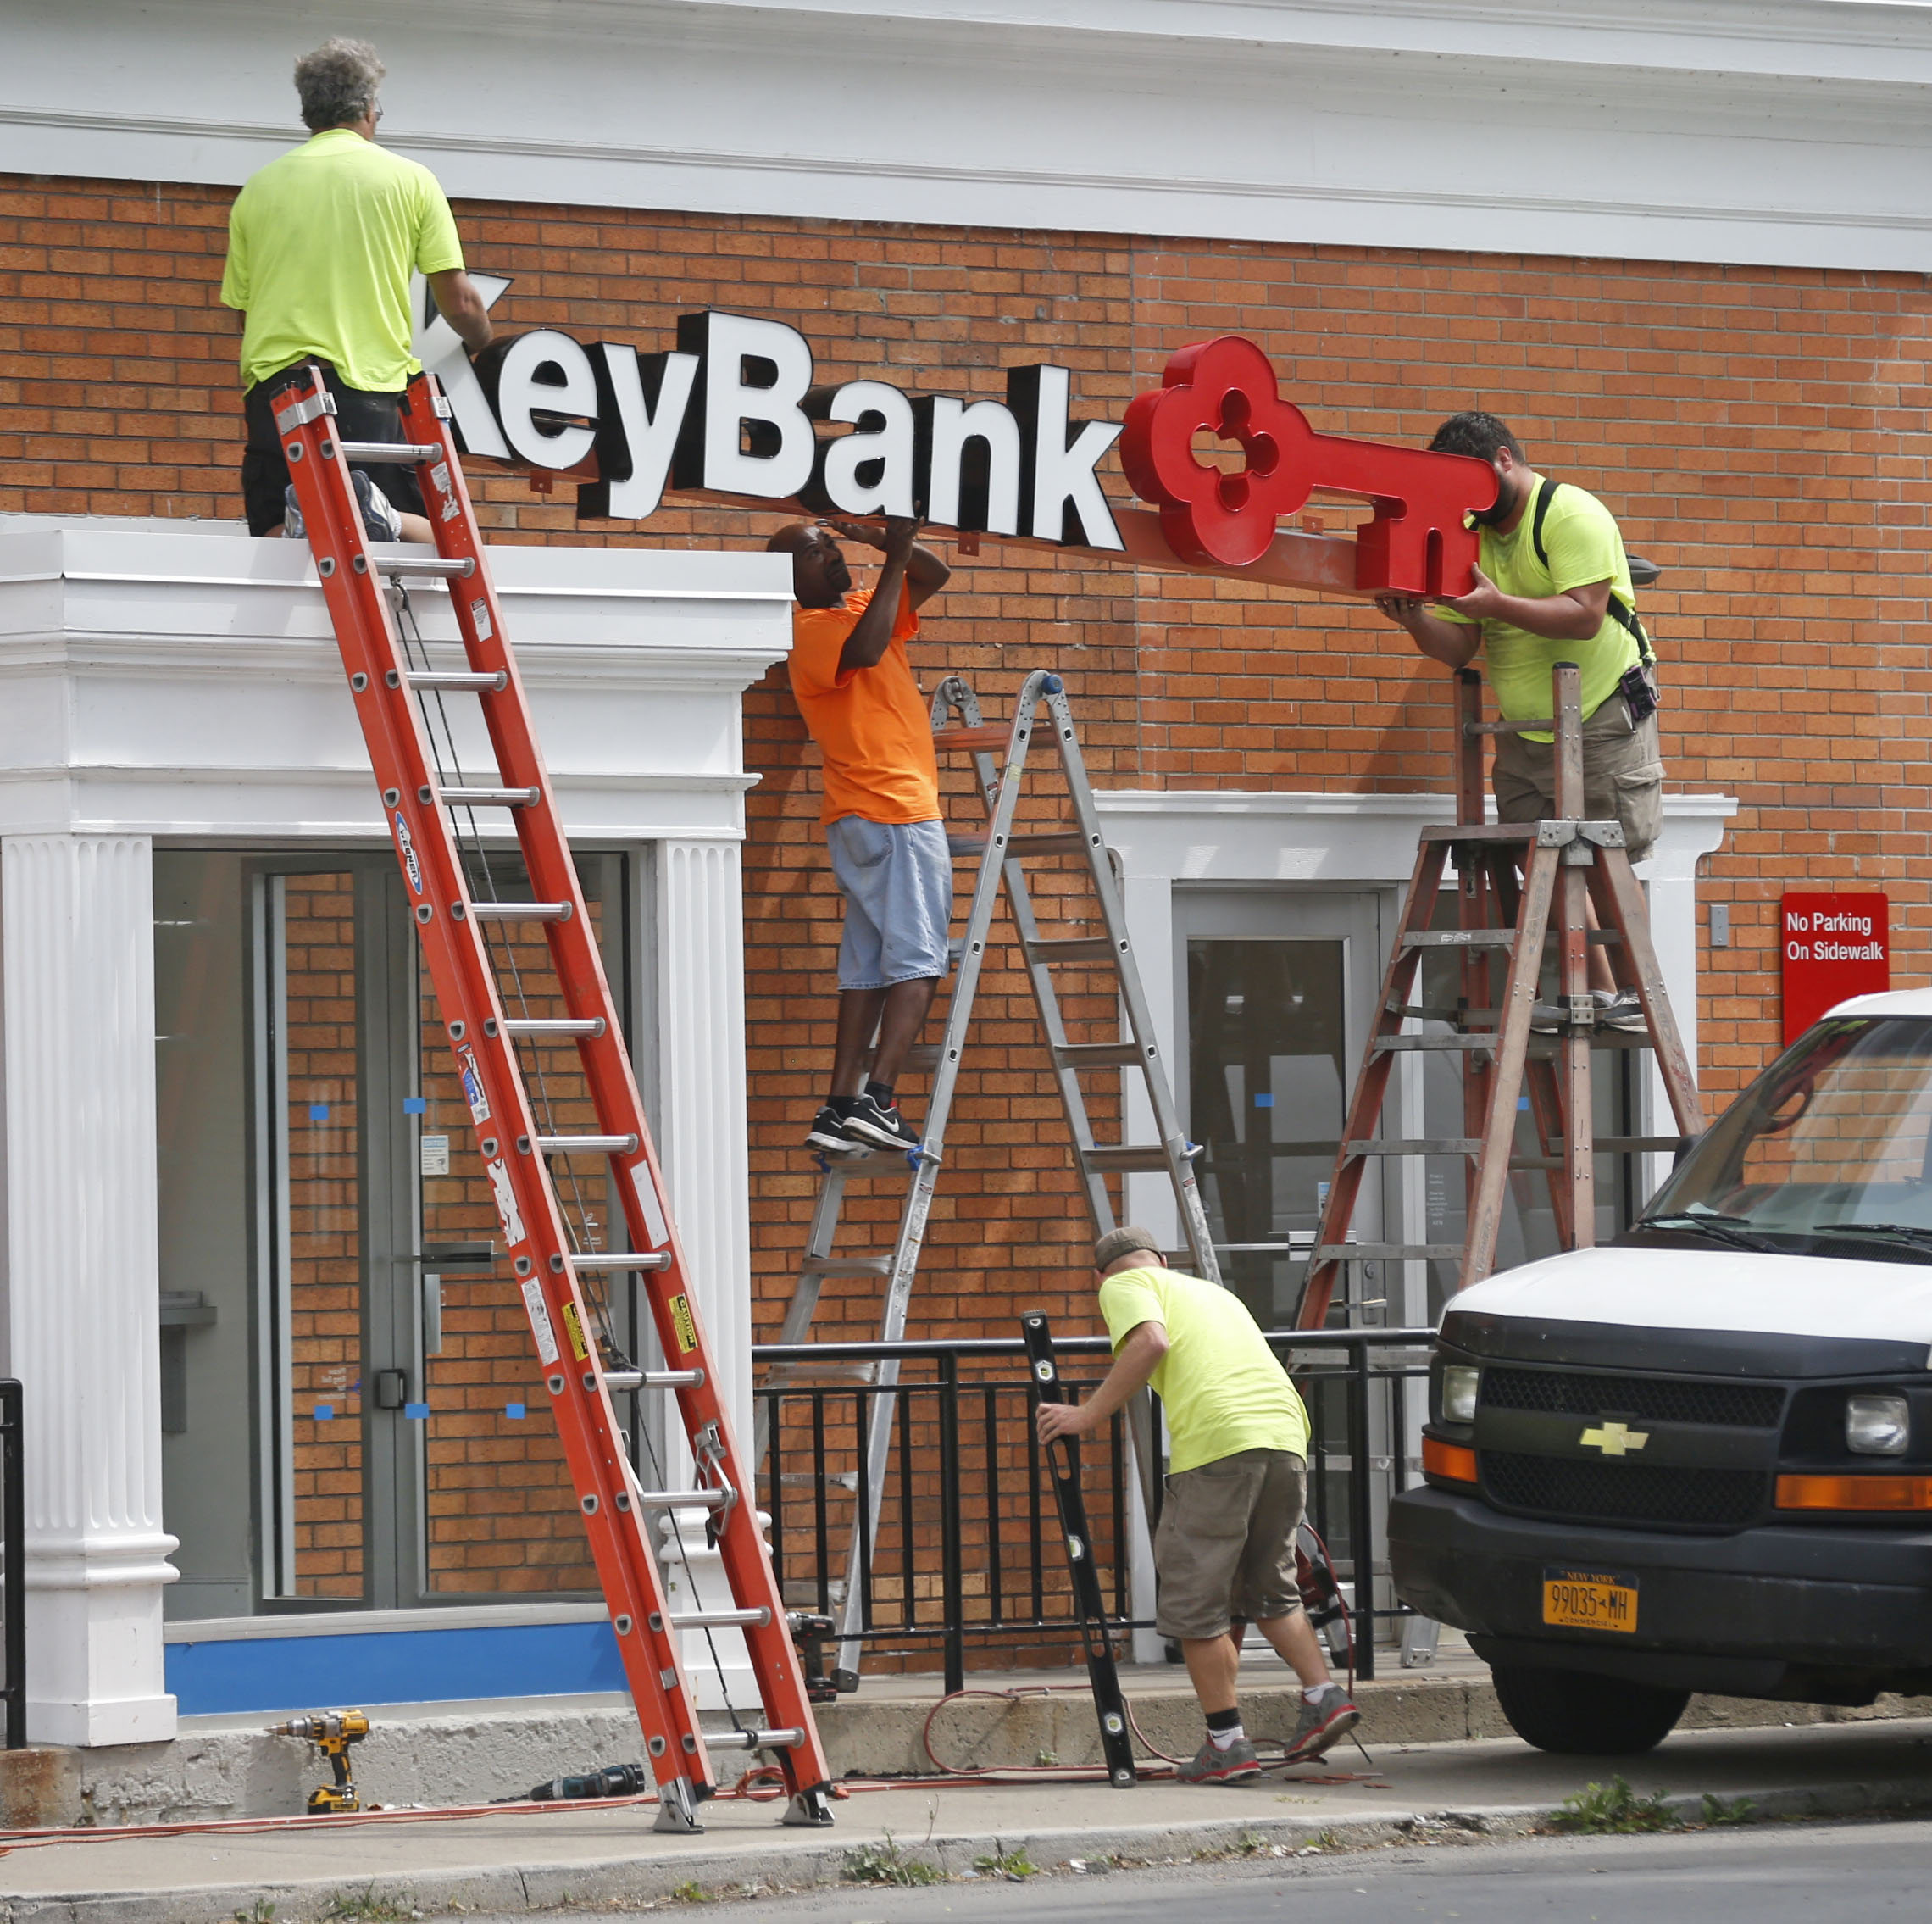 Contractors install a KeyBank sign after removing a First Niagara logo on the bank branch at the corner of Willett and Clinton streets in Buffalo last fall. Key completed its acquisition of First Niagara last summer. (Robert Kirkham/Buffalo News file photo)